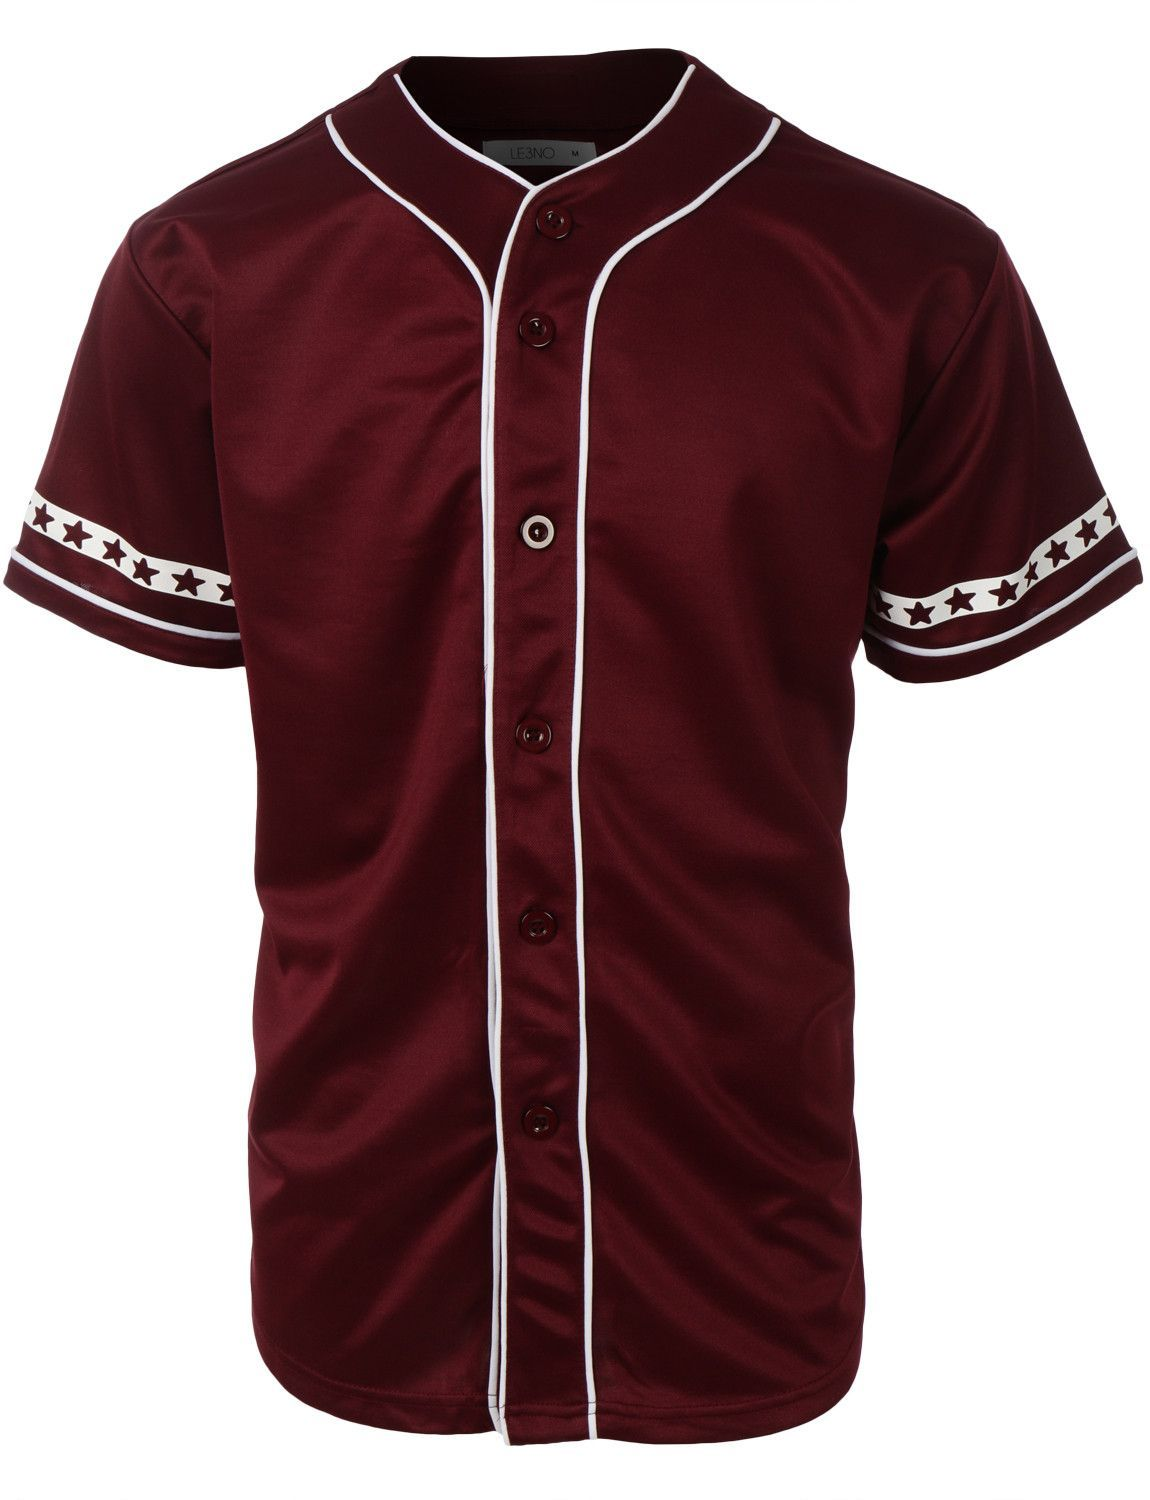 6da15dfc022 Gear up for baseball season in this varsity short sleeve button down  baseball jersey with design print. Its perfect for outdoors activities or  weekend ...